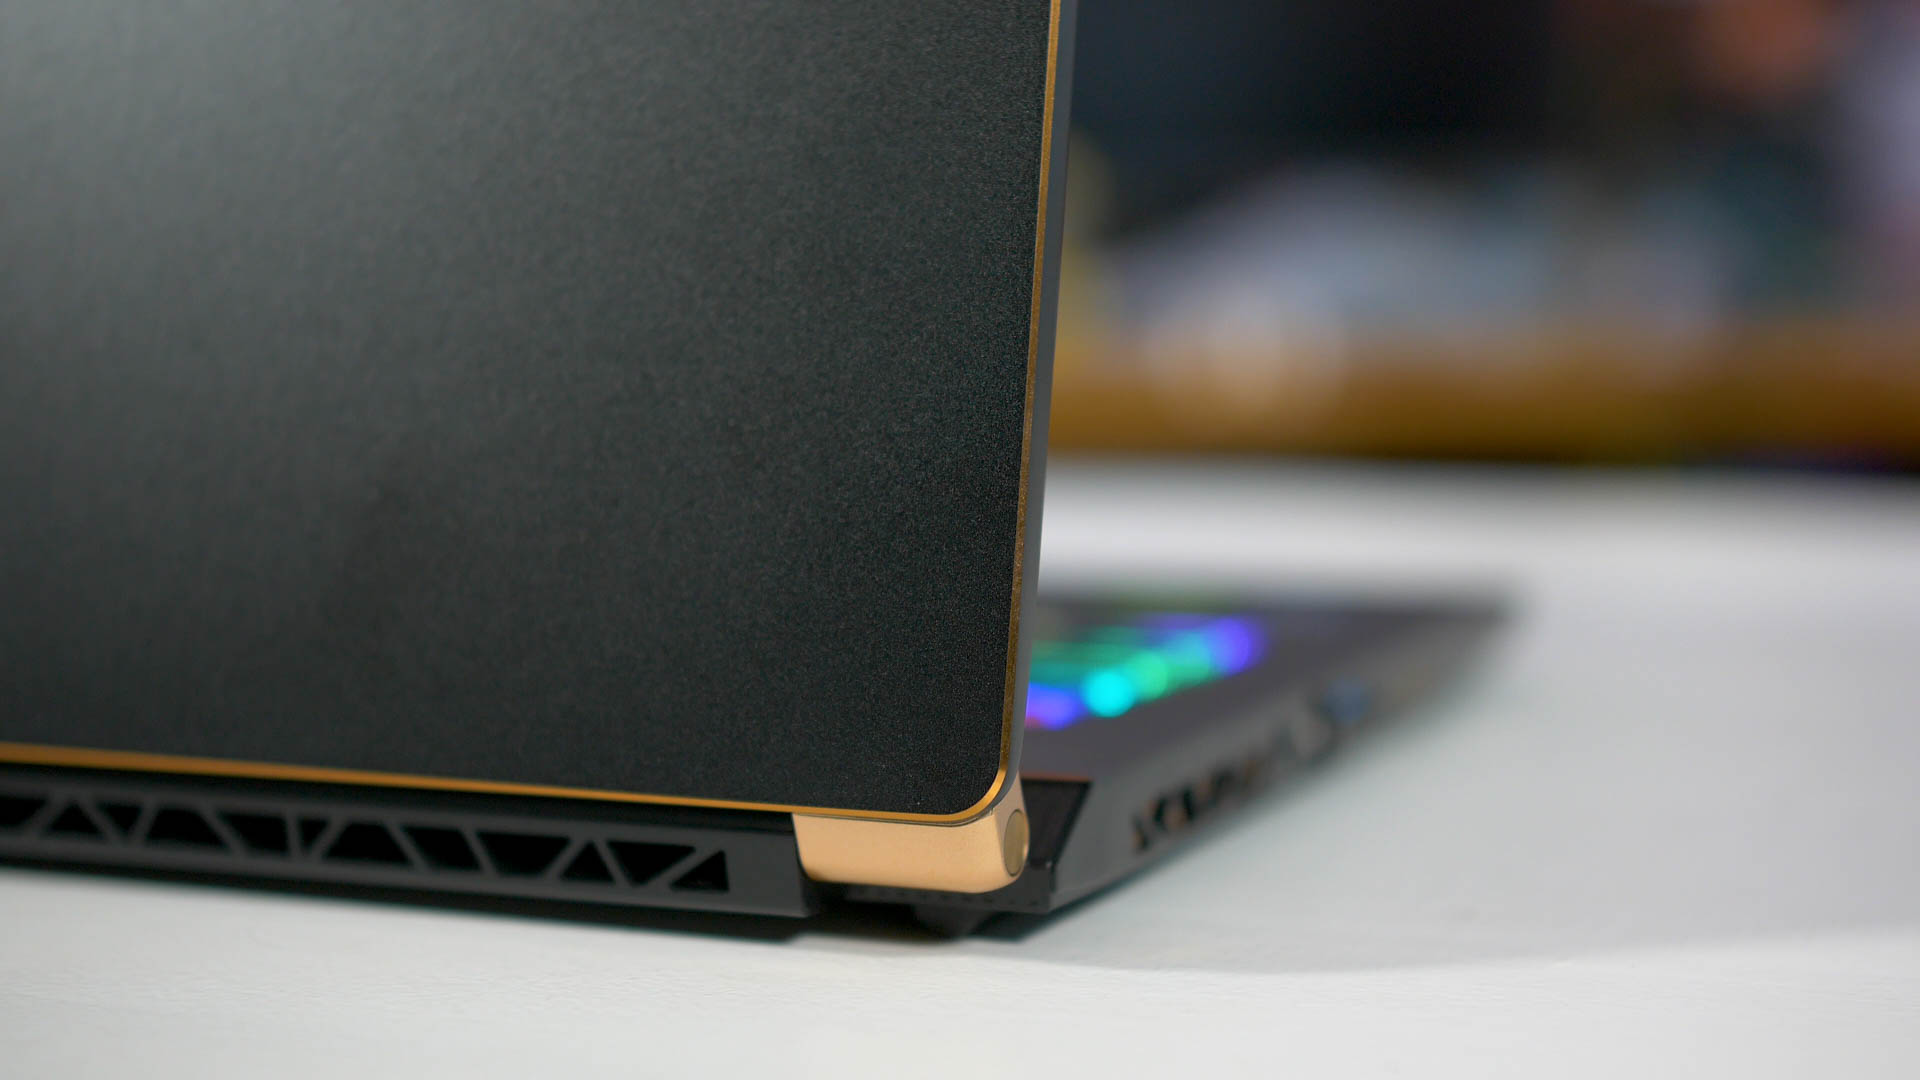 MSI GS75 Stealth Gaming Laptop Review - TechSpot